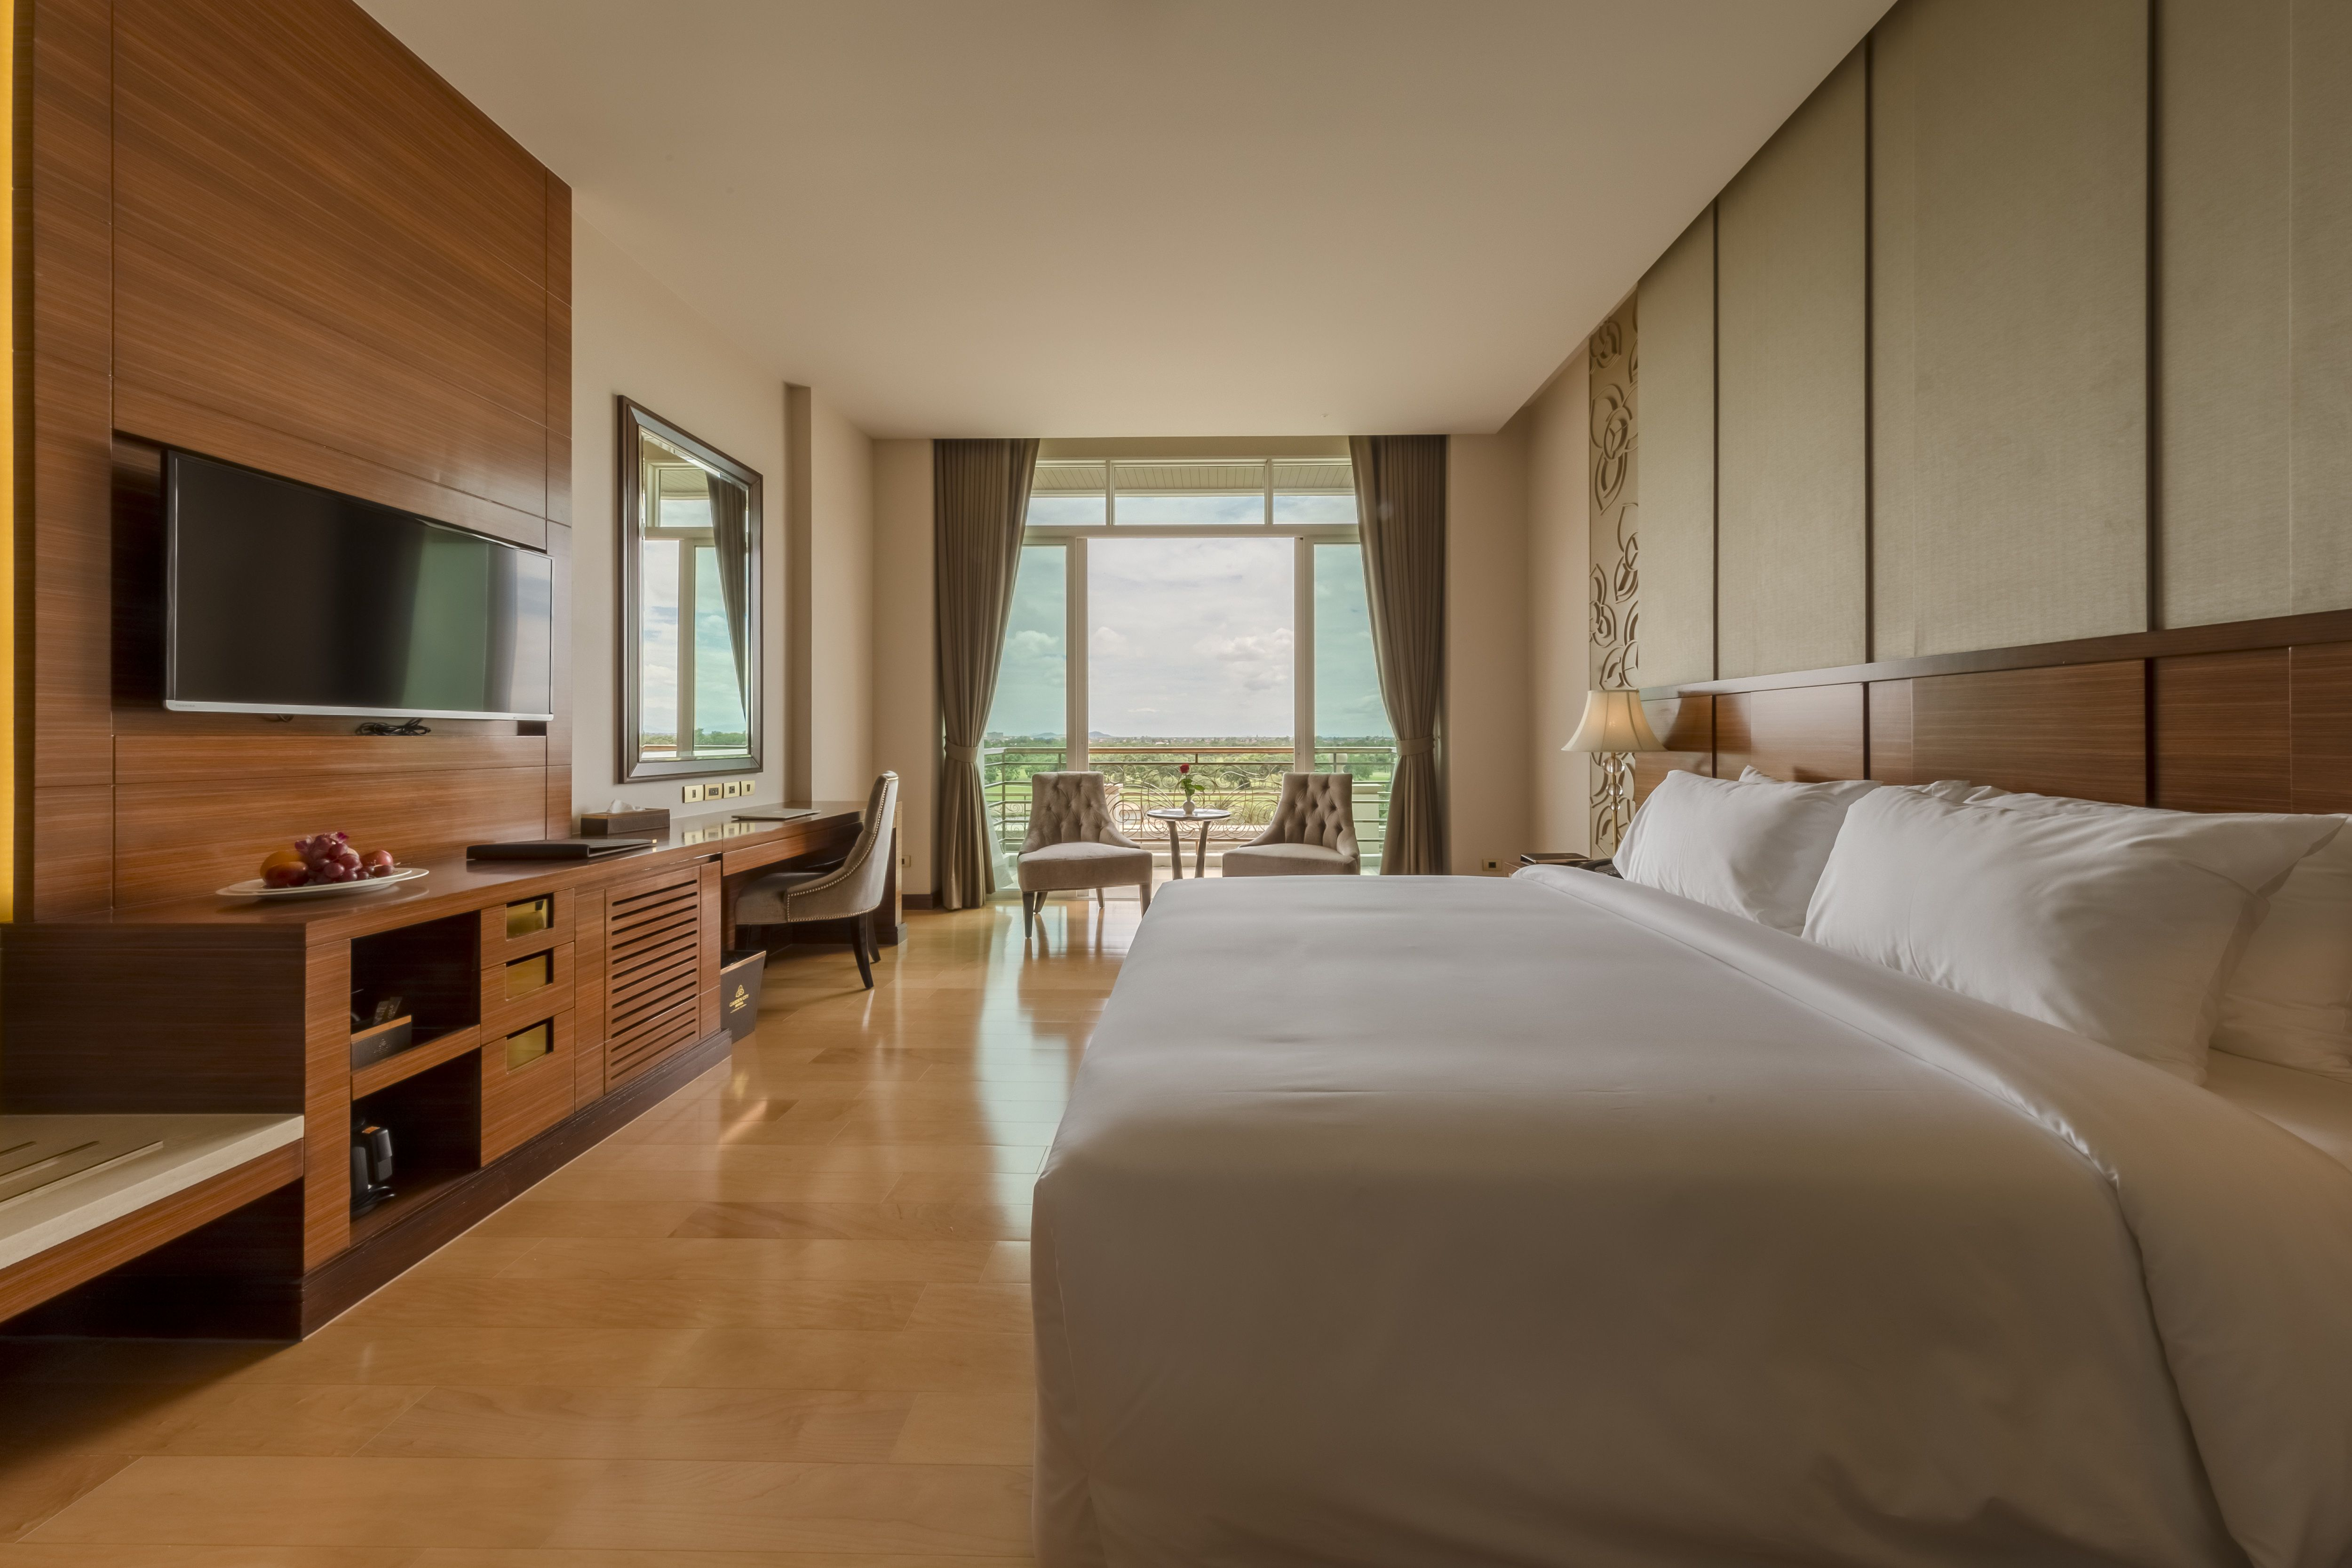 45 Square Meters Deluxe Room Strokes In A Modern Style Of Wood Marble And A Glass Window With A See Through Bath Room From Garden City Garden City Hotel Room